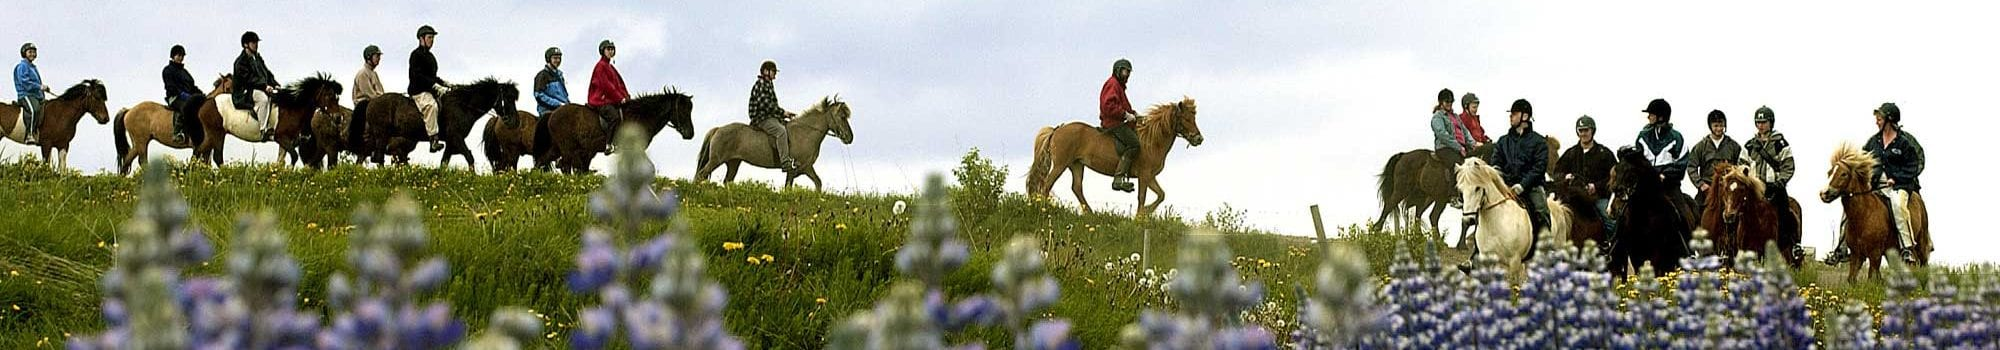 Horseback riding on Icelandic horses